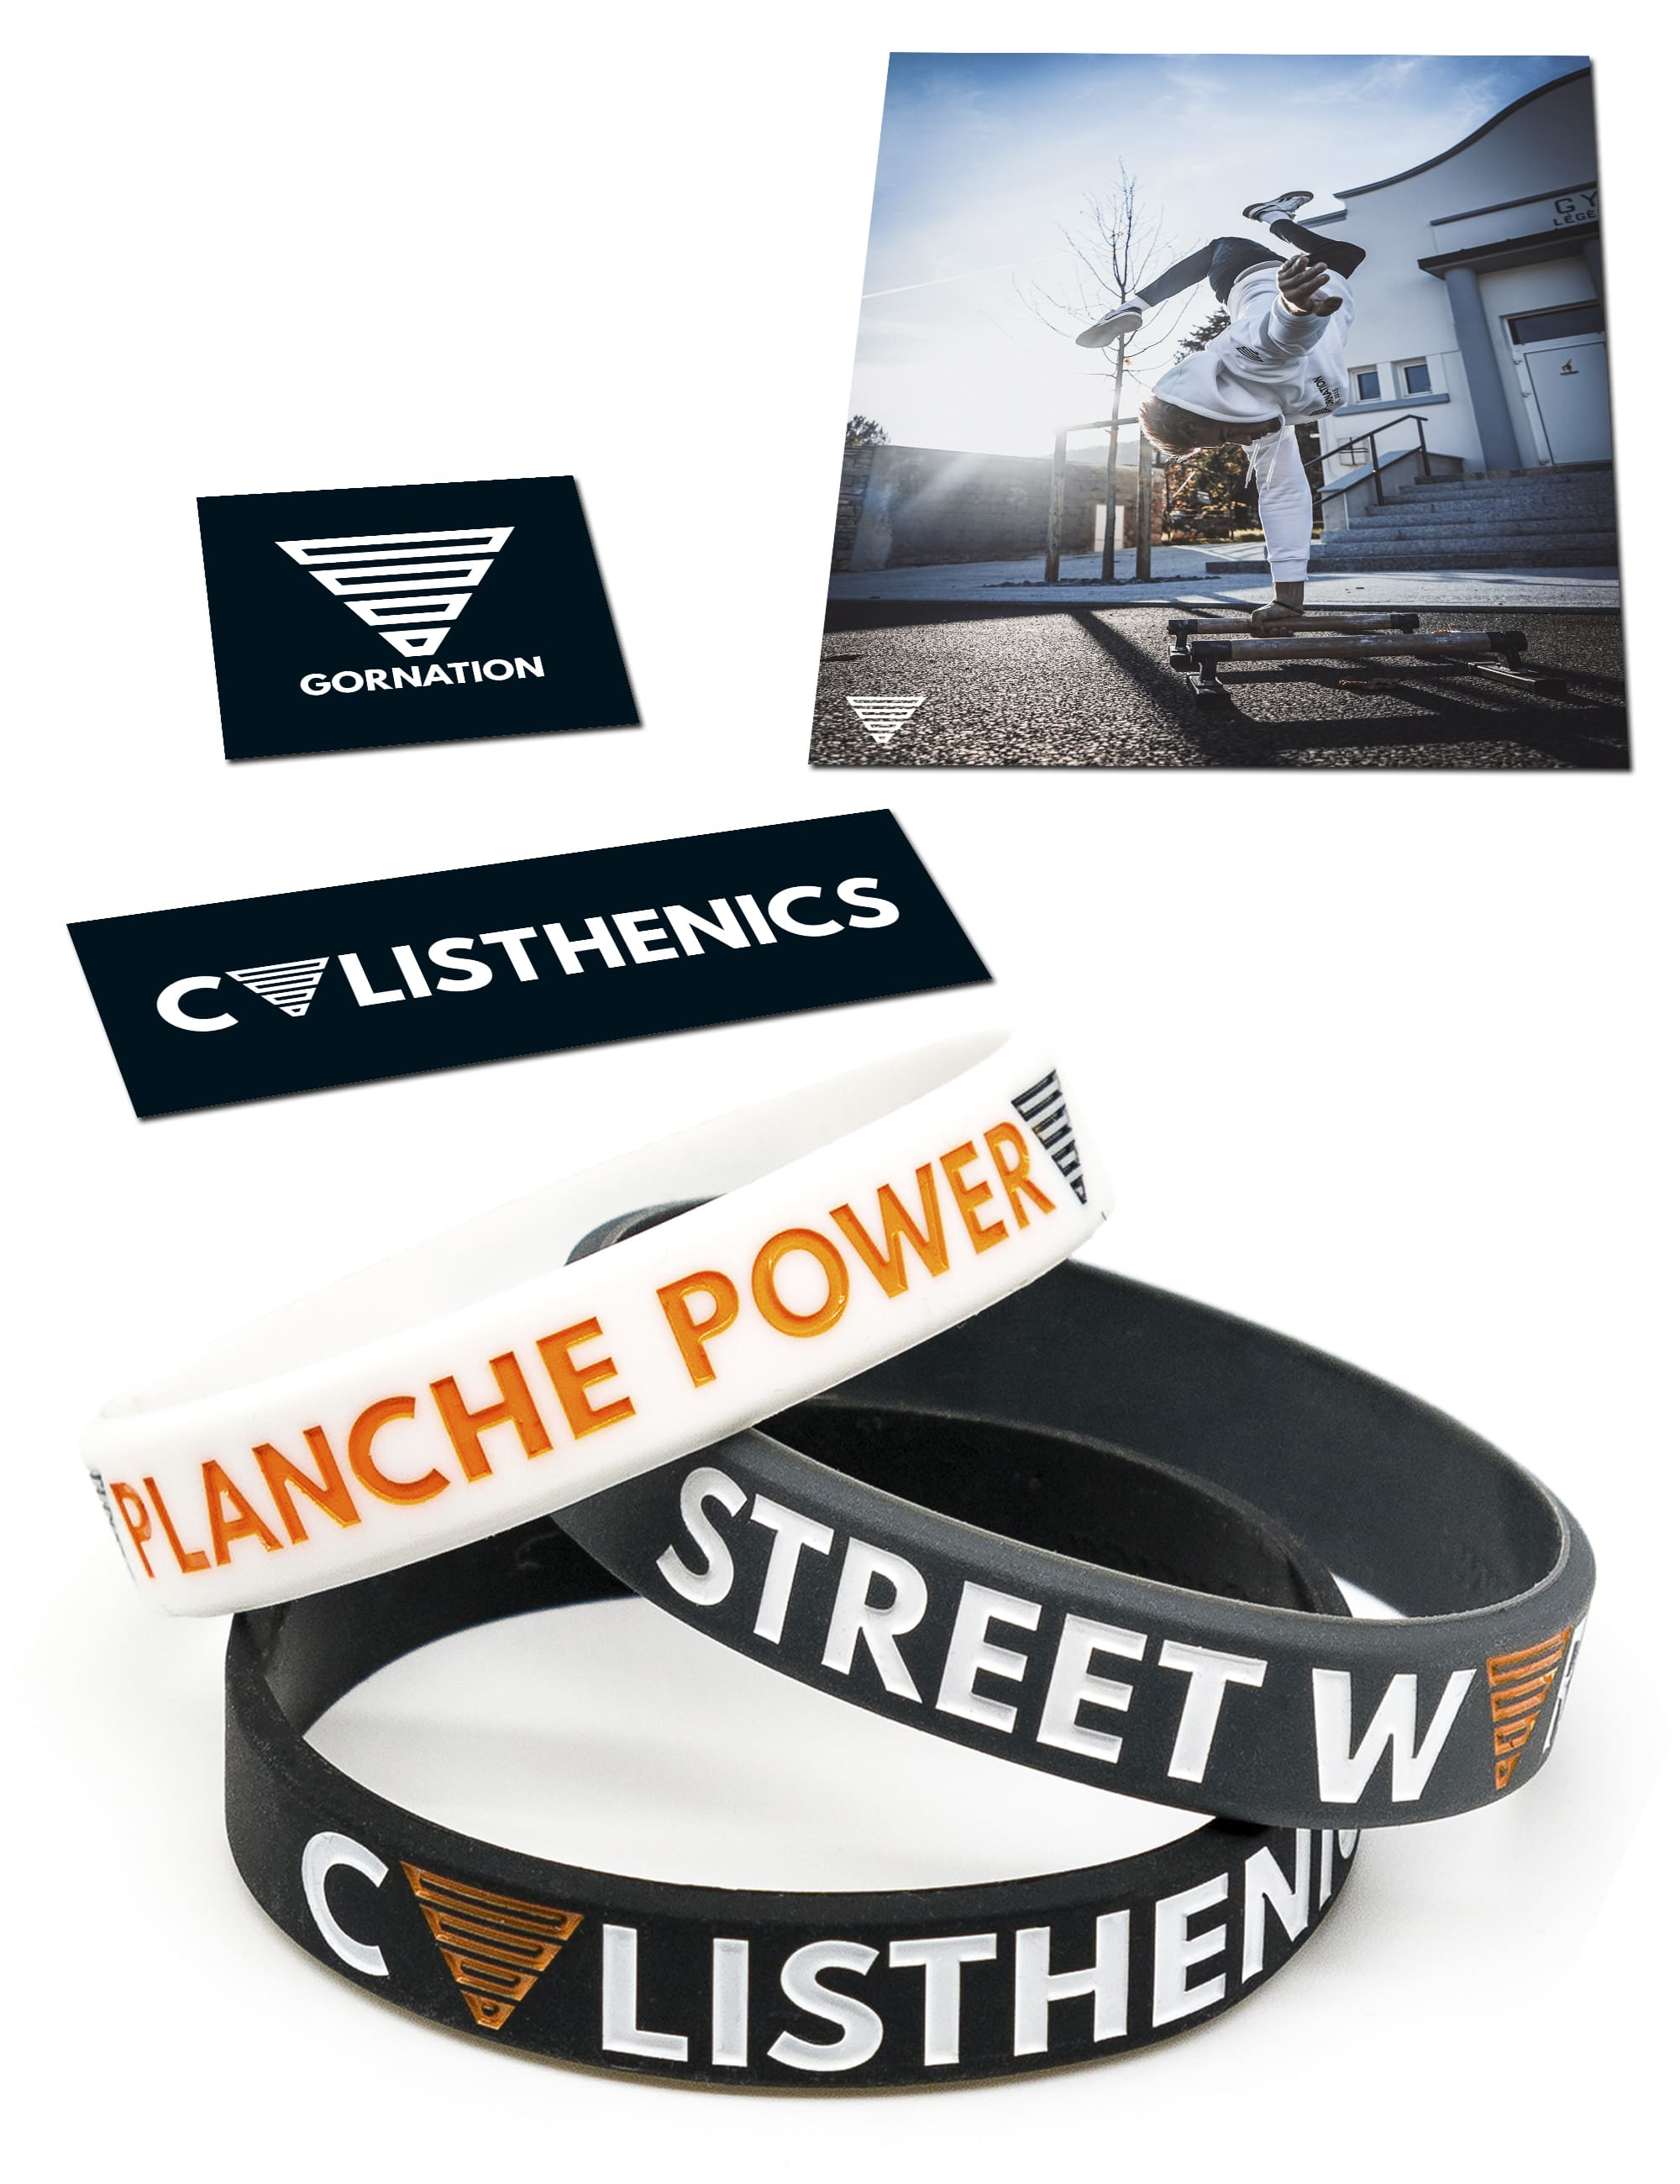 3 wristband, first white wristband is planche power. second black armband is street workout, third black armband is calisthenics